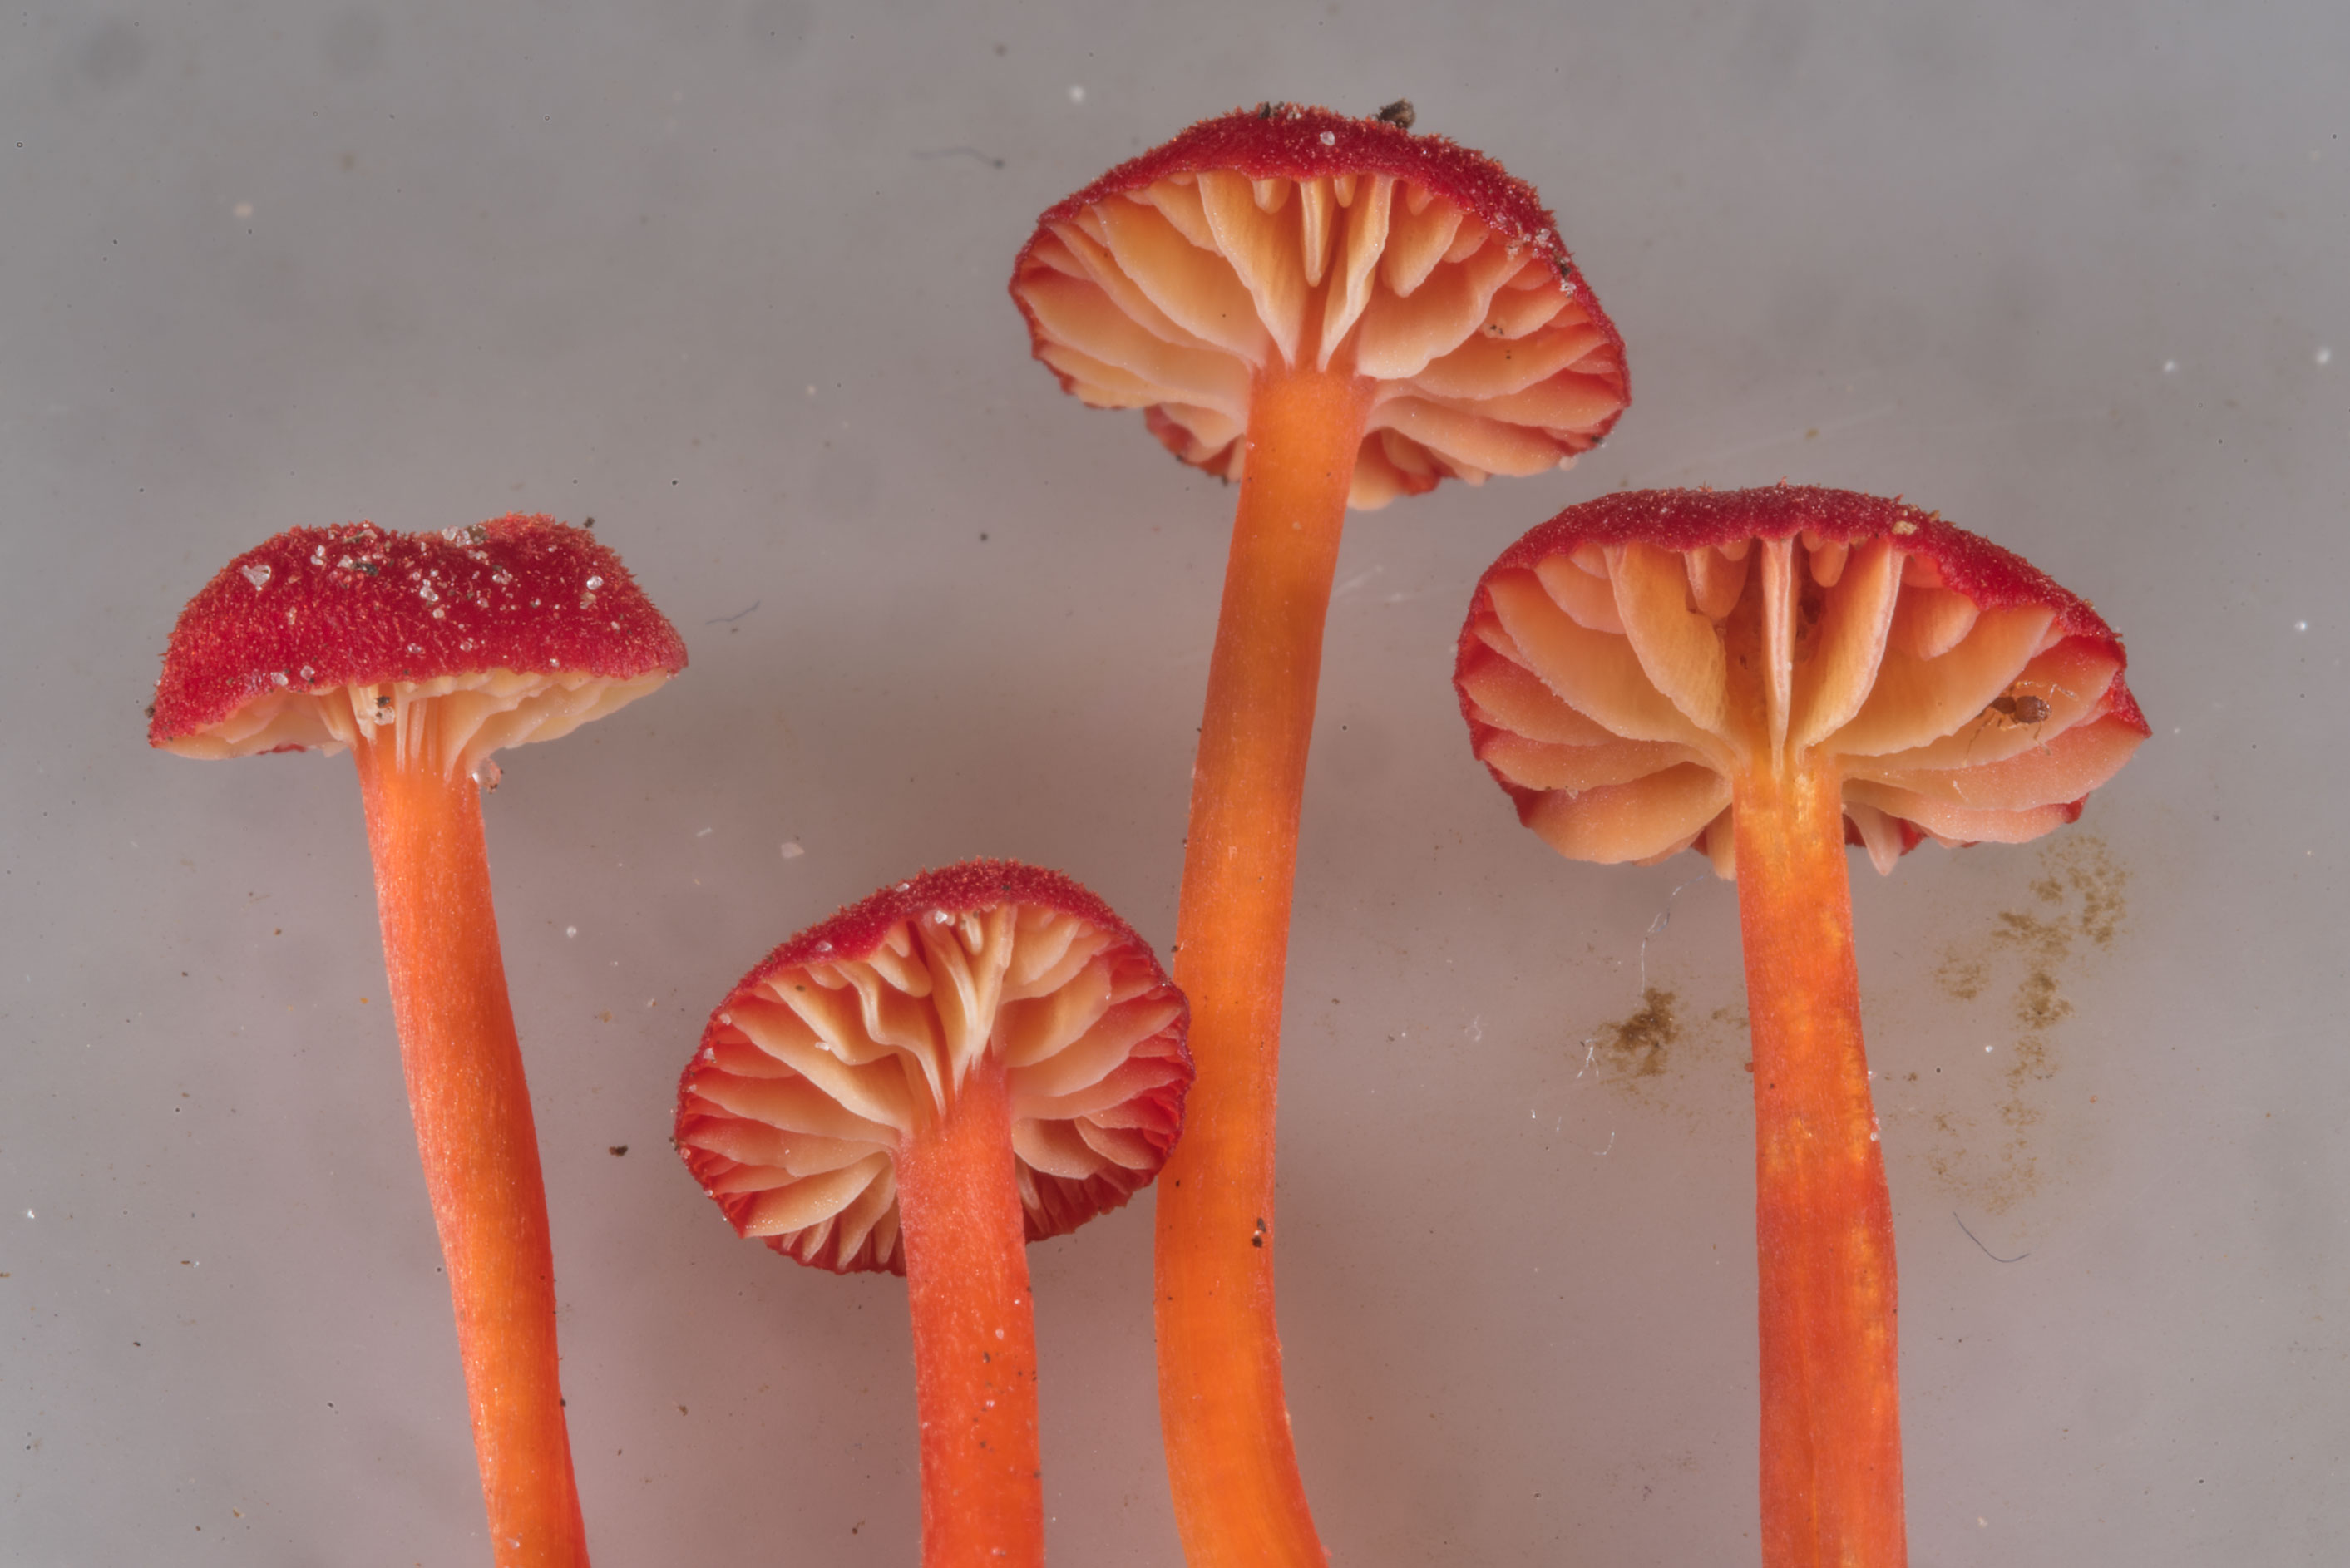 Gills of waxcap mushrooms Hygrocybe subsect...National Forest near Huntsville, Texas